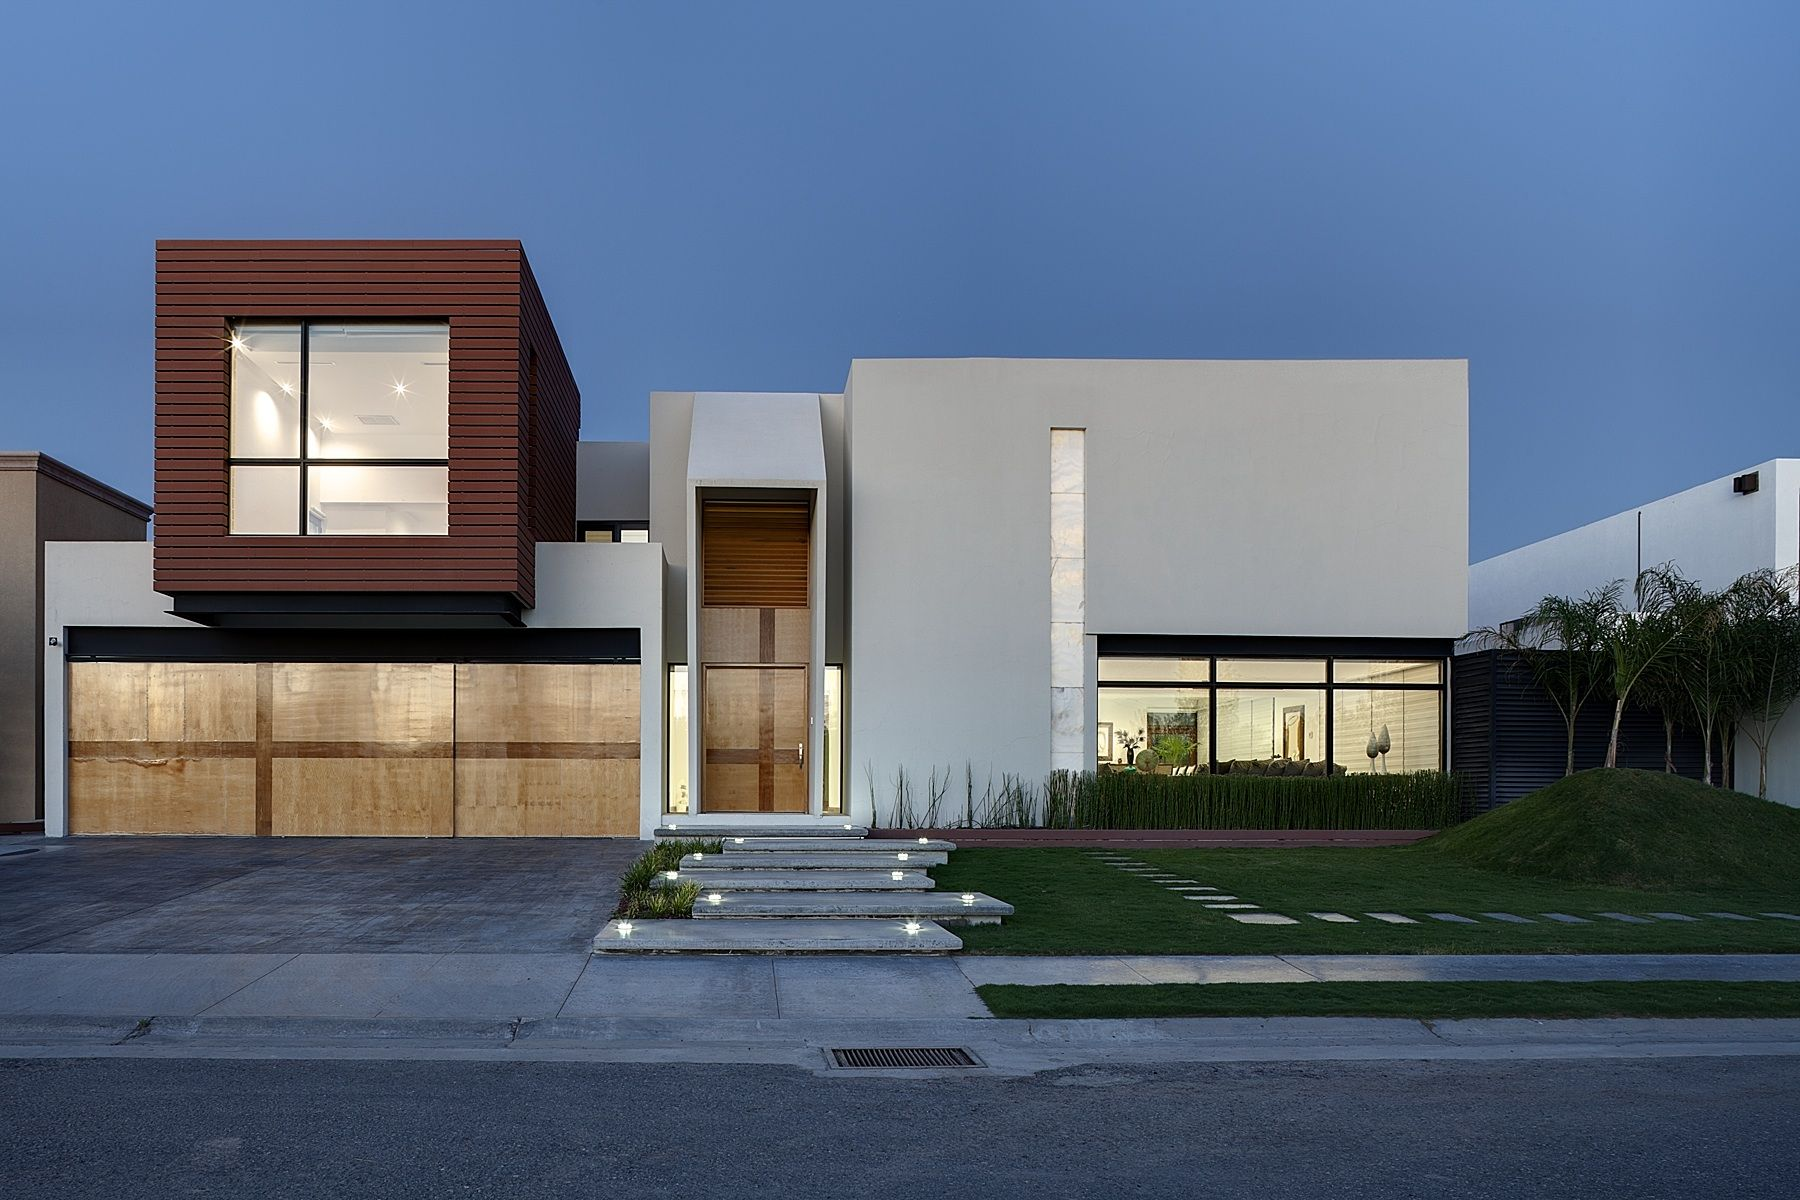 Minimalist Homes Design – minimalist homes for sale in | Teal house ...